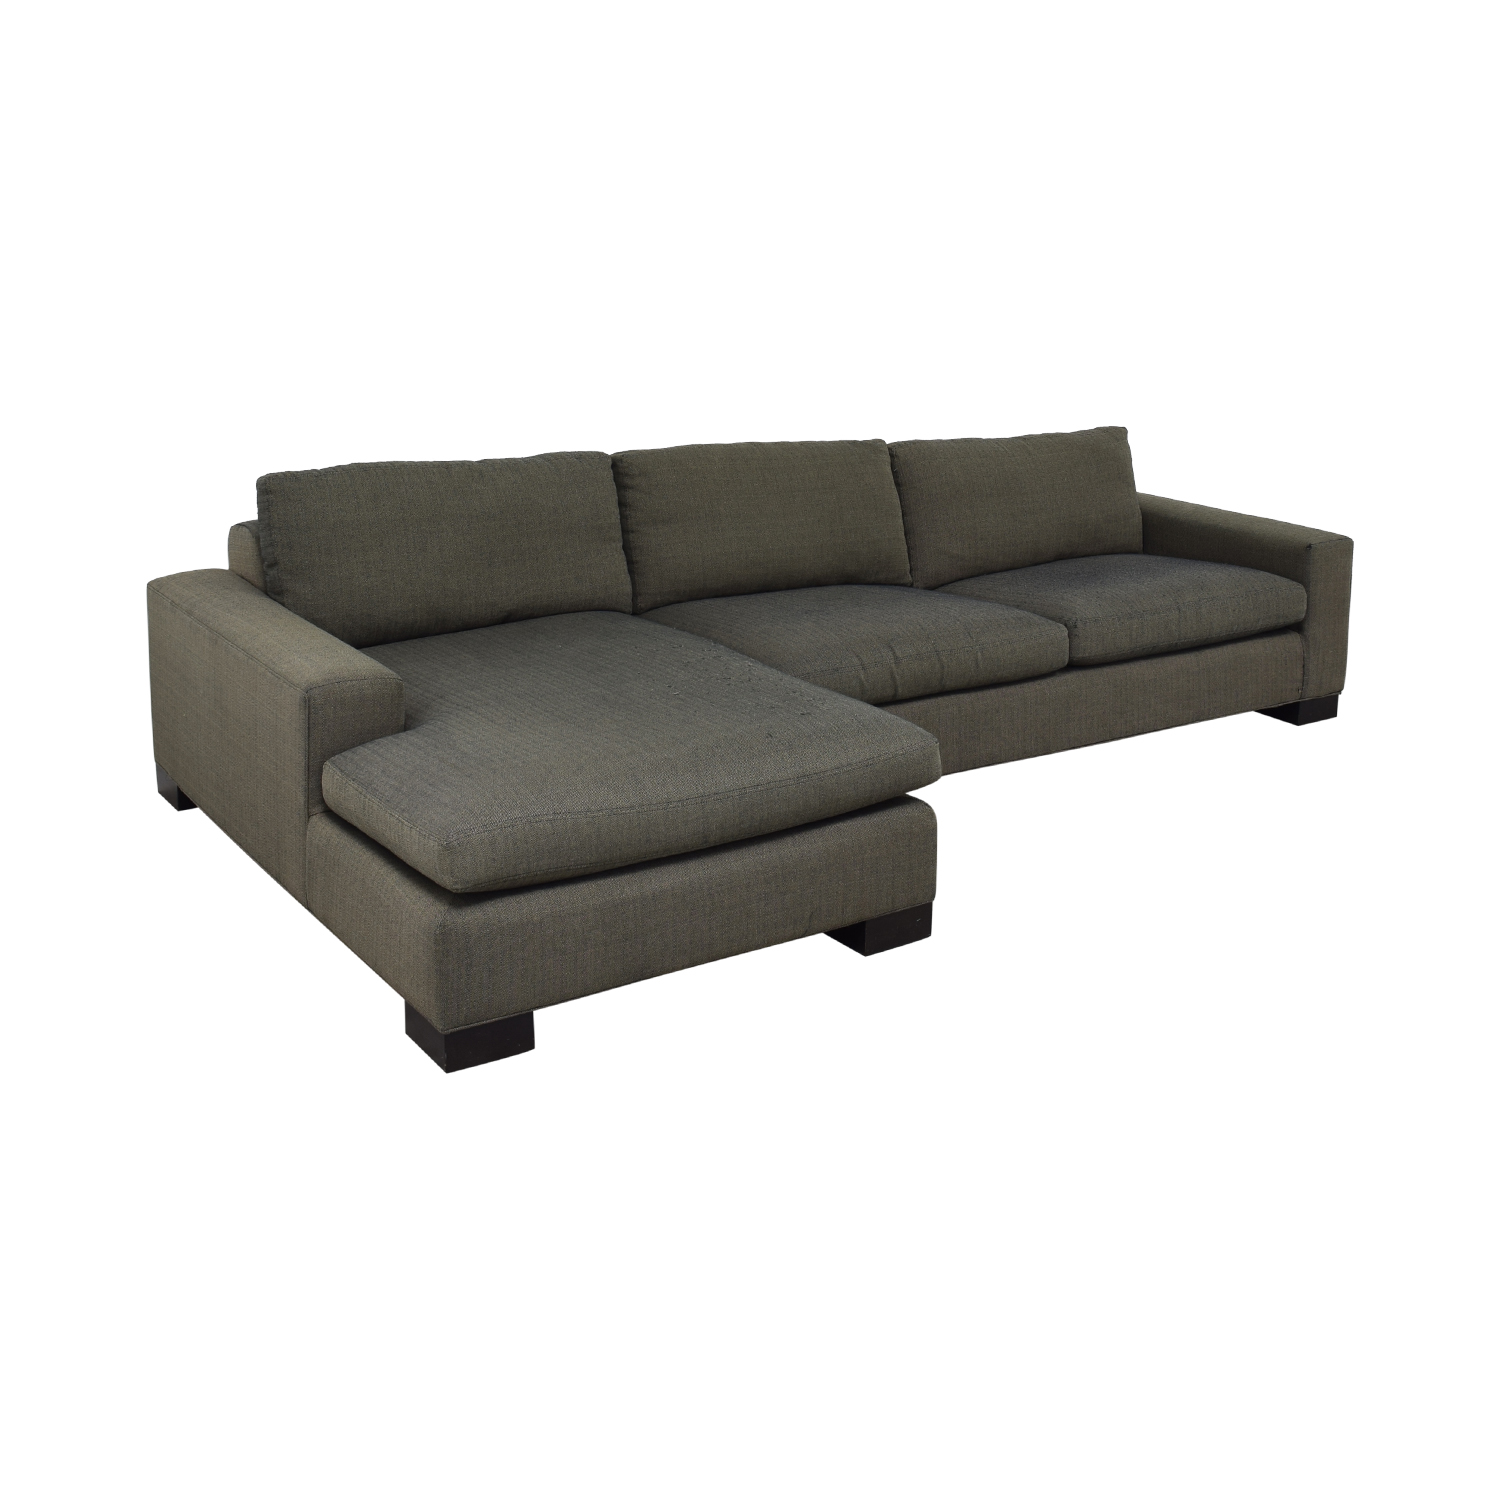 Room & Board Room & Board Brown Chaise Sectional